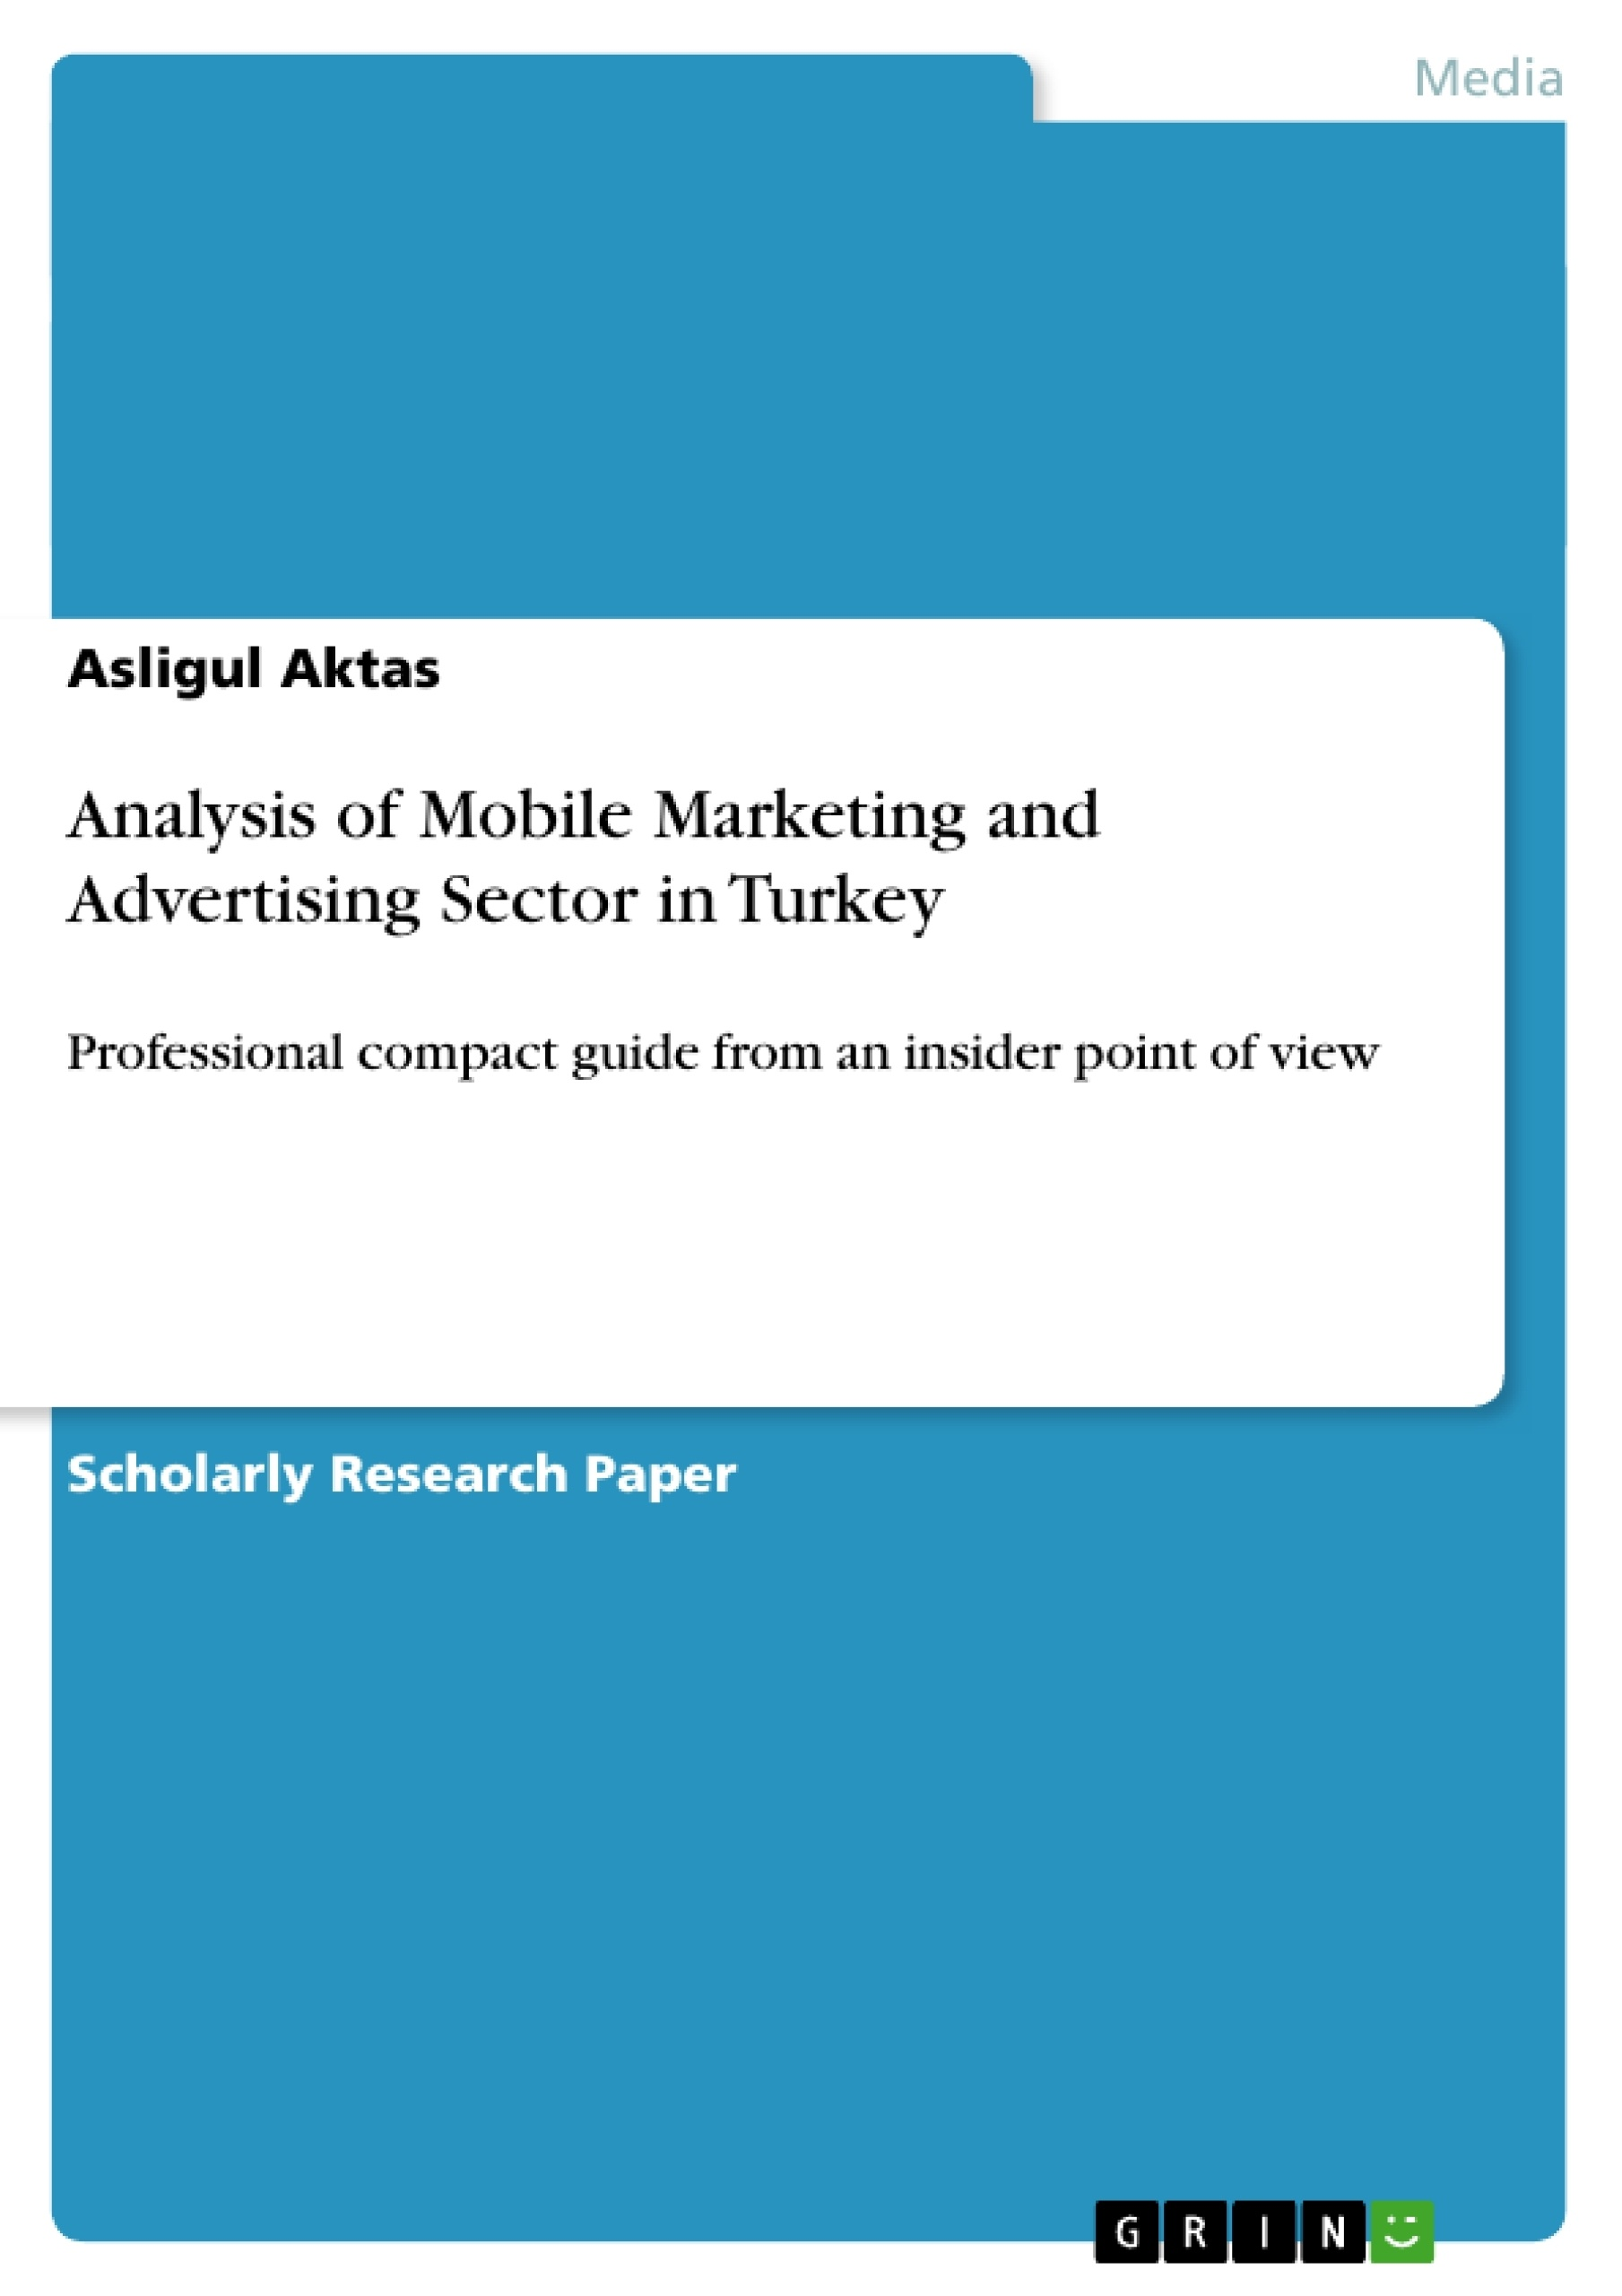 Title: Analysis of Mobile Marketing and Advertising Sector in Turkey